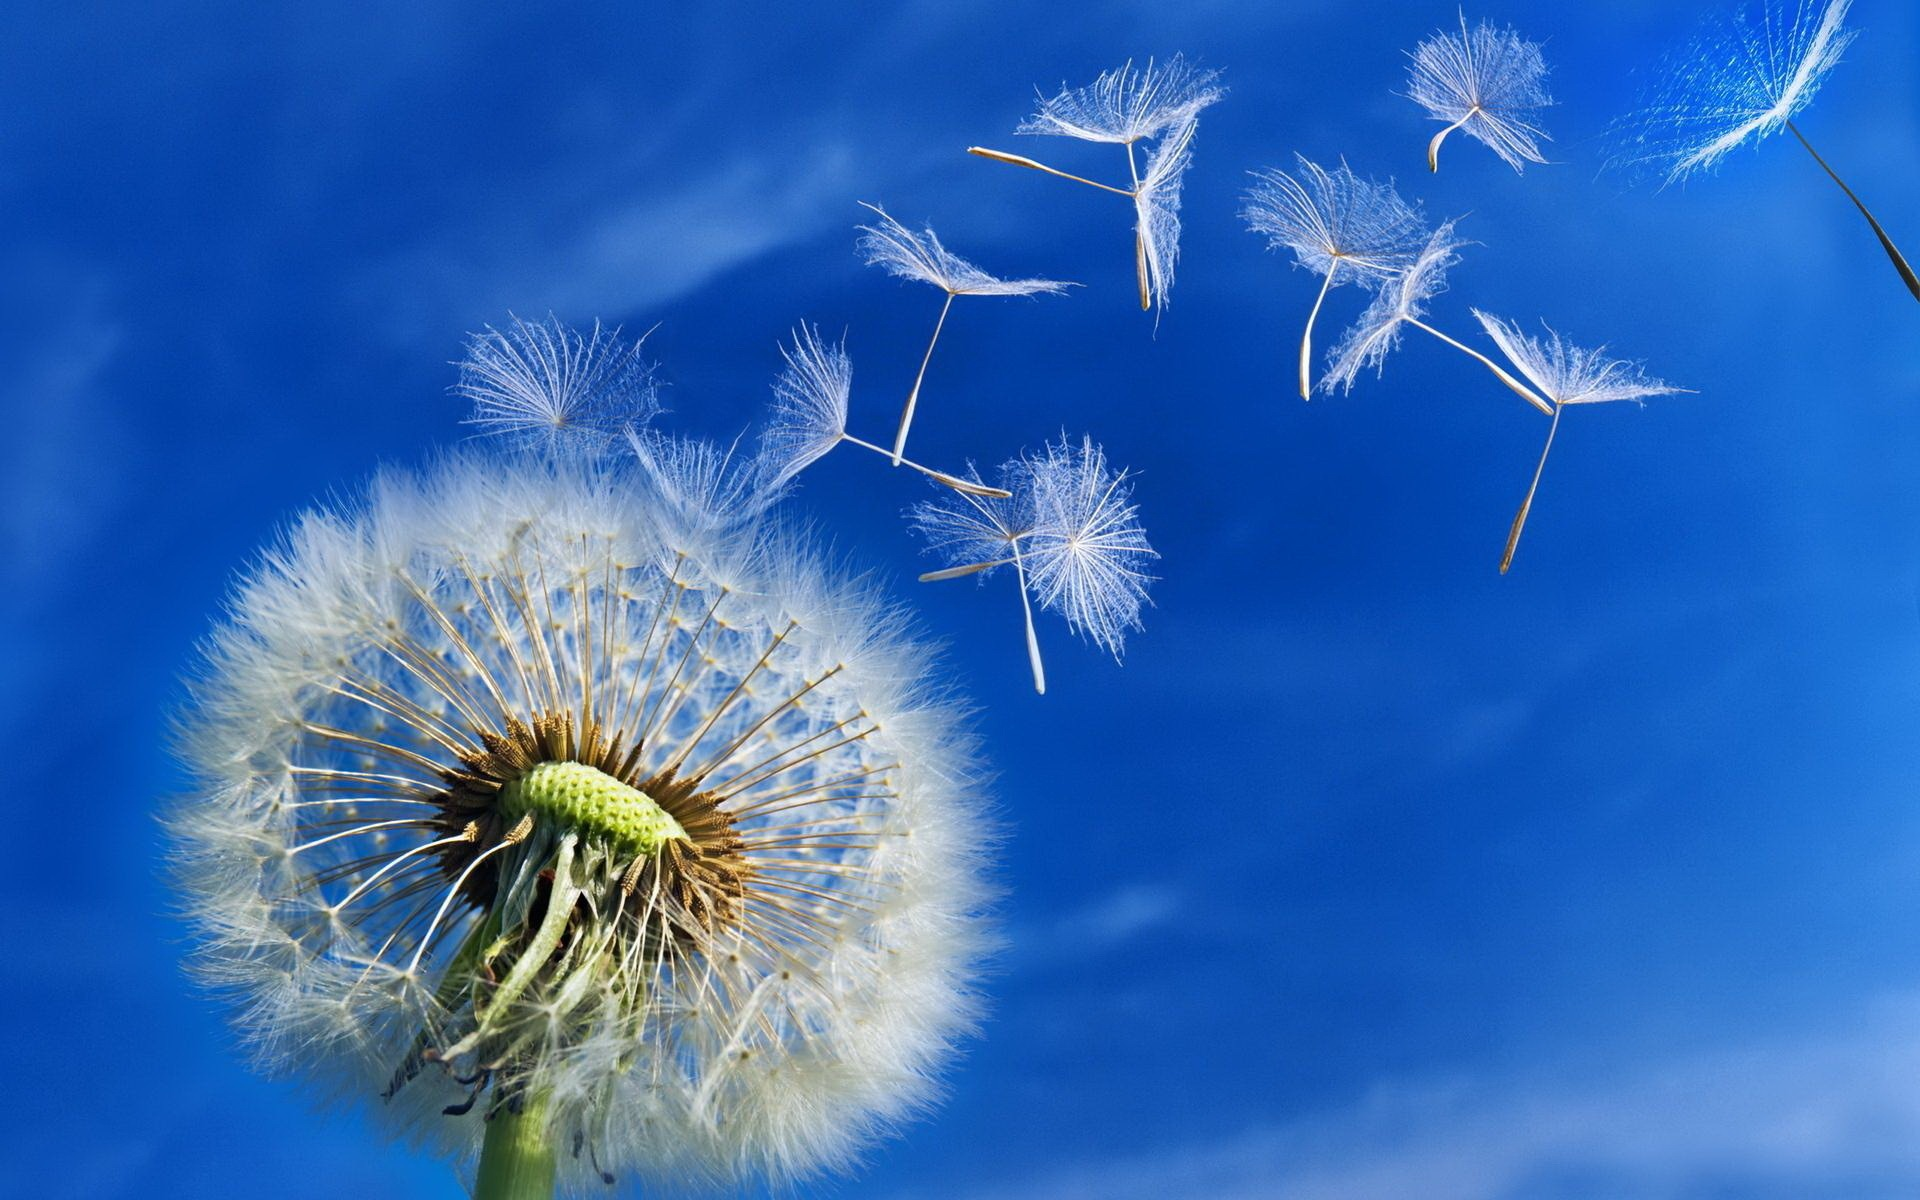 Dandelion Seeds Wallpaper 24006